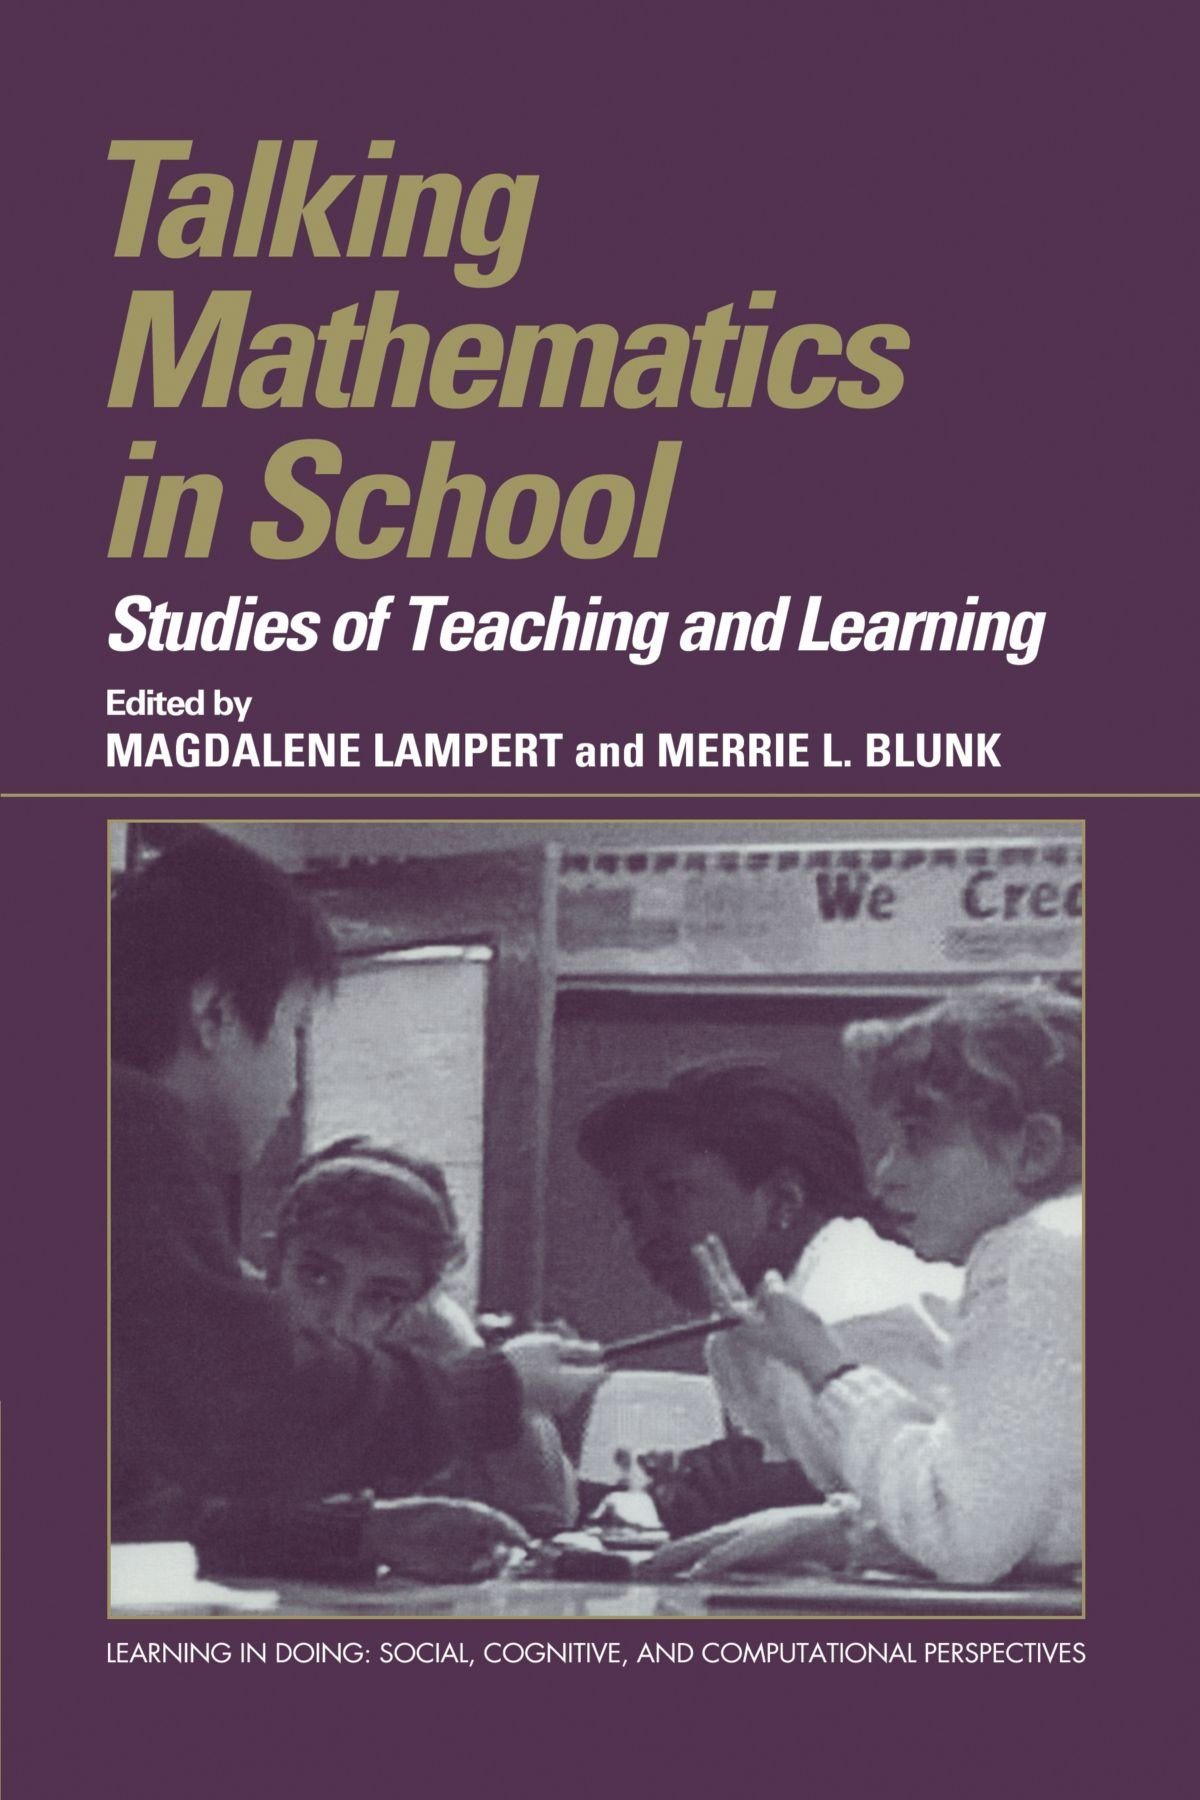 Talking Mathematics in School: Studies of Teaching and Learning (Learning in Doing: Social, Cognitive and Computational Perspectives) ebook